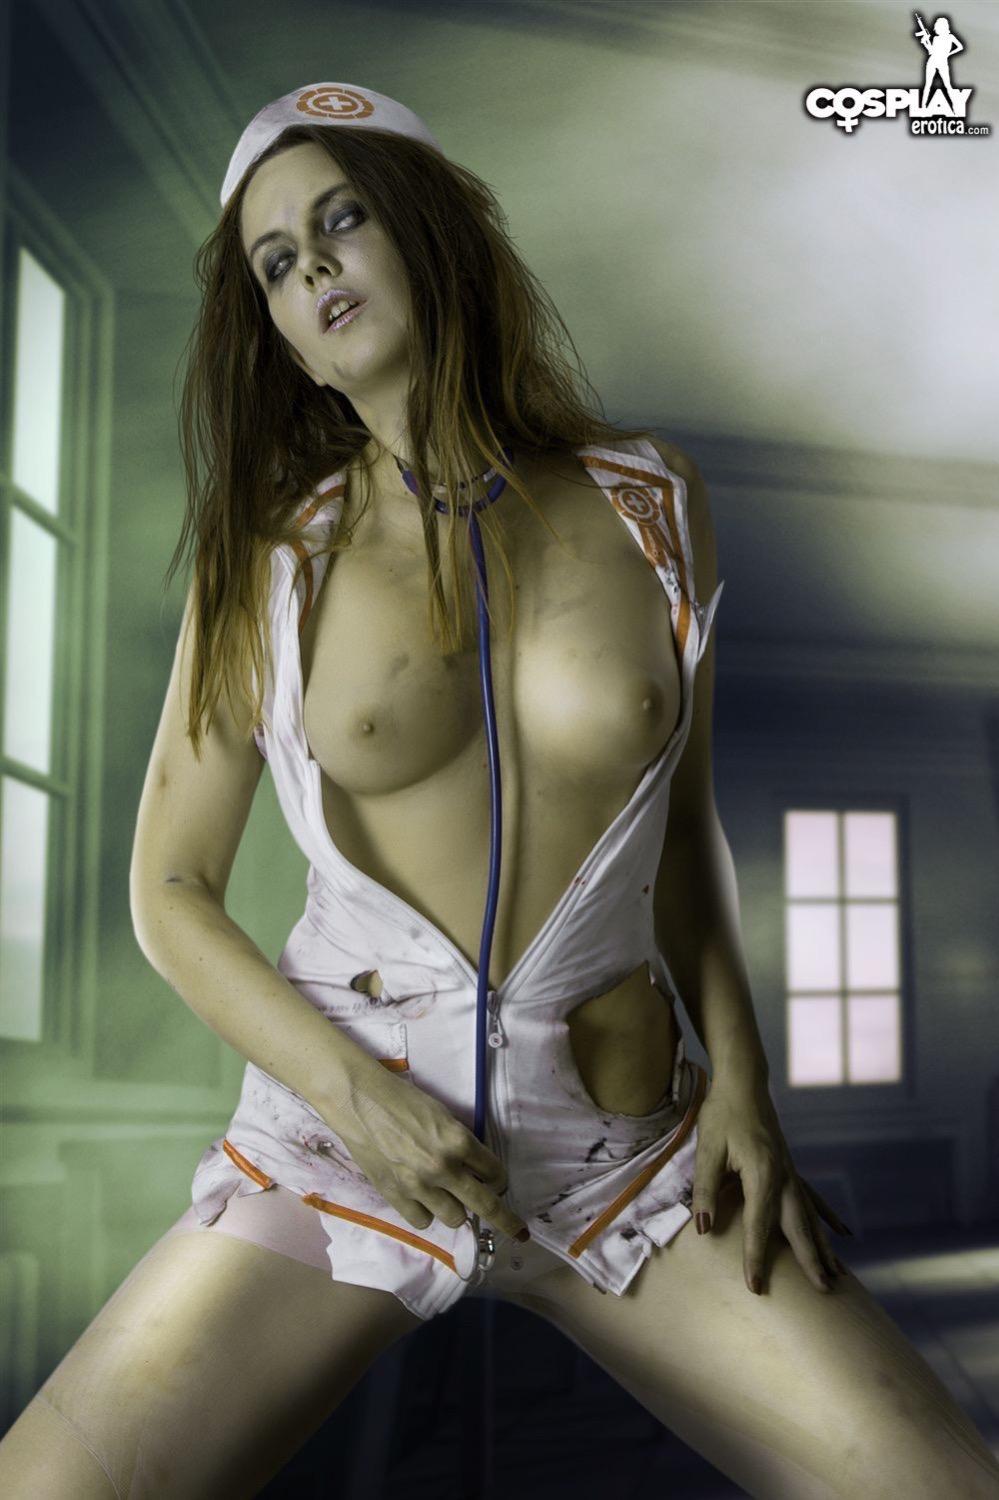 Think, you Hot zombie girl naked agree, rather